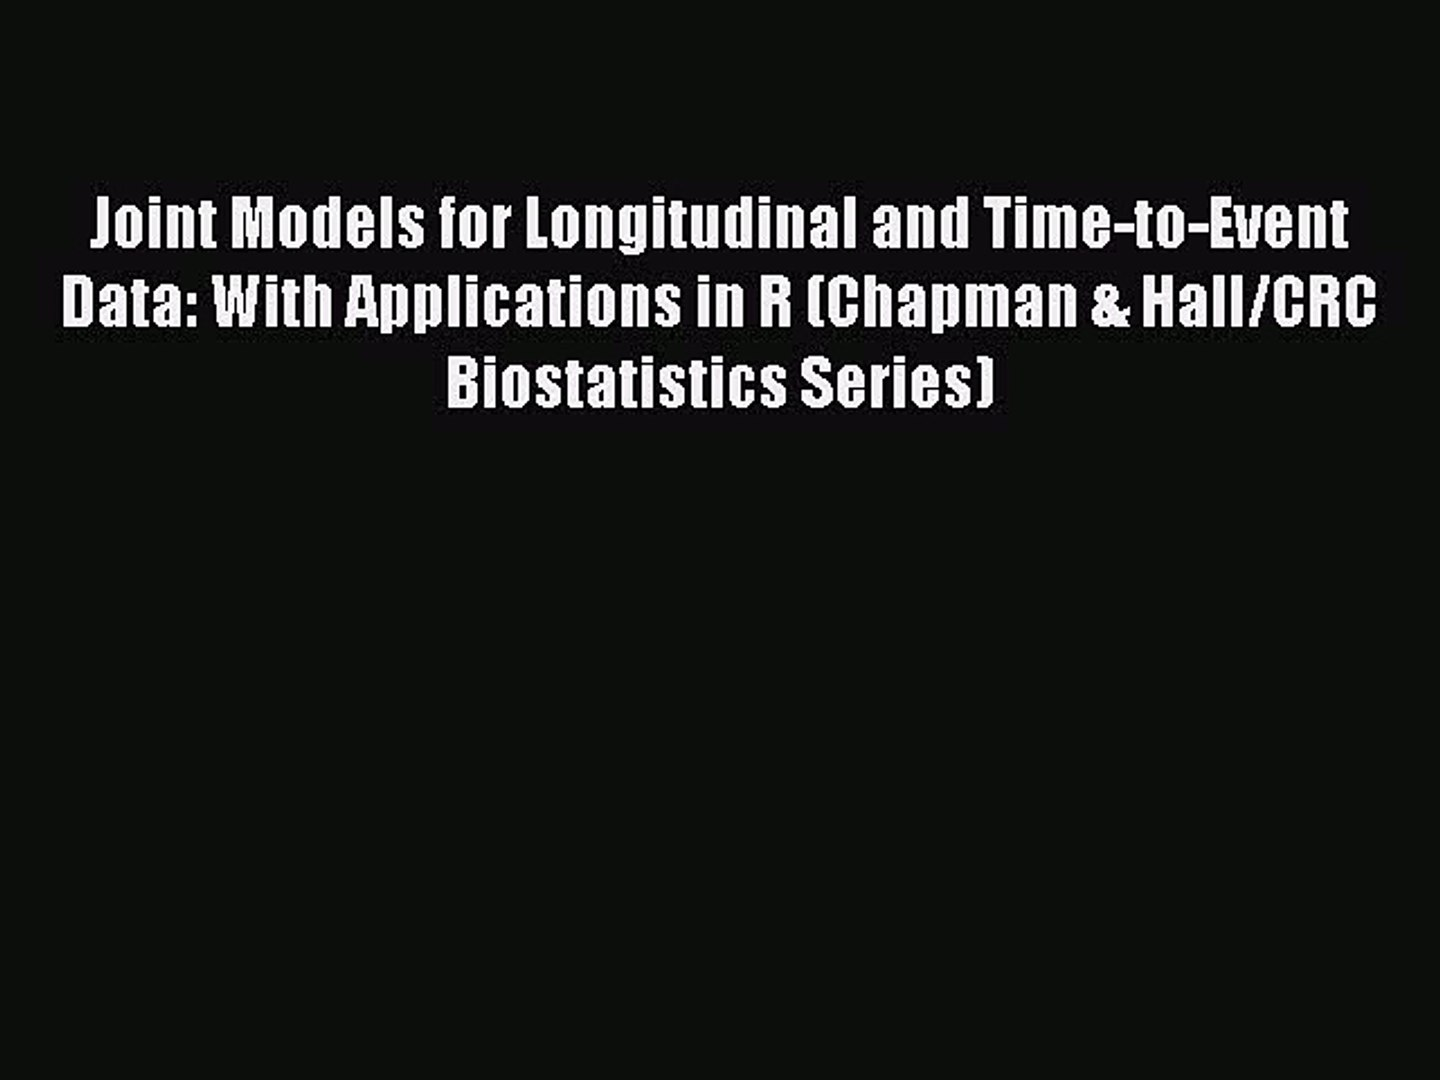 Joint models for longitudinal and time-to-event data : with applications in R